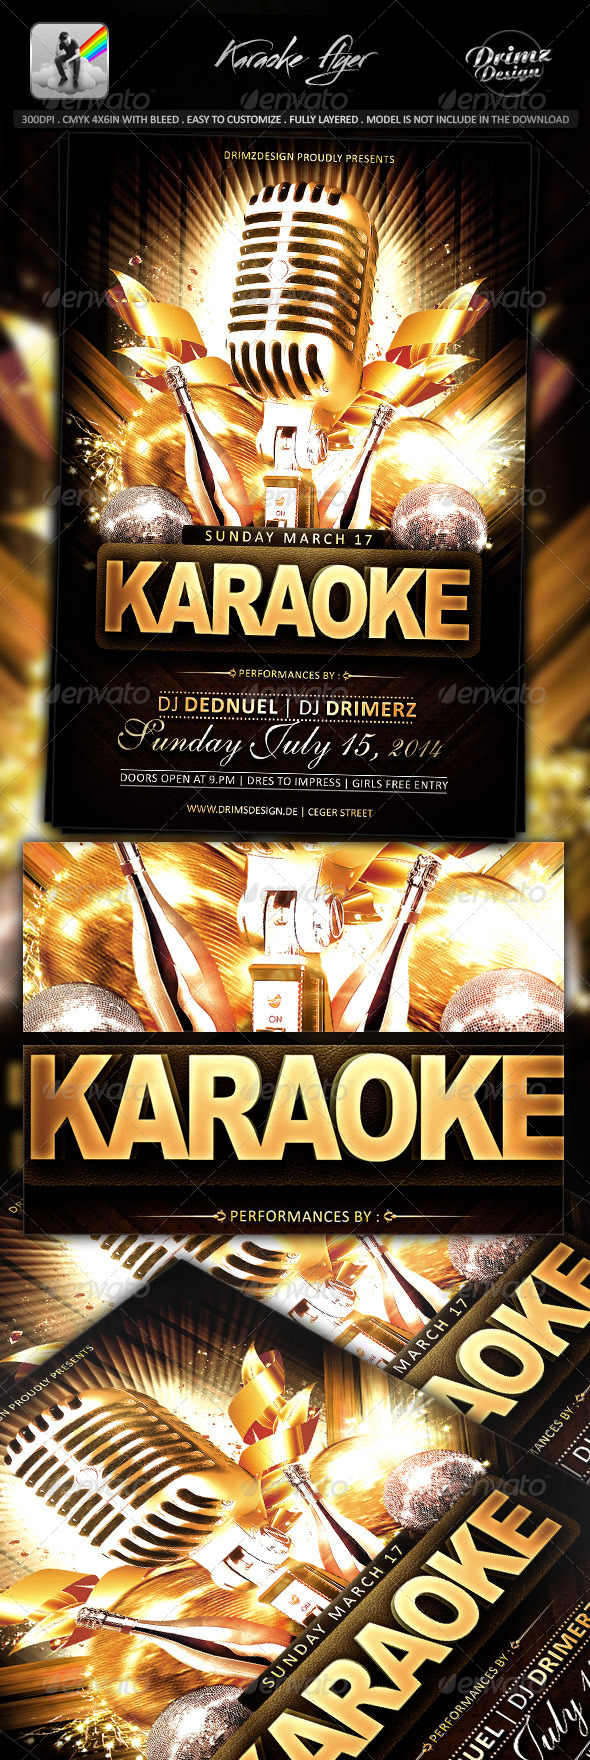 GraphicRiver Karaoke Flyer 7636260